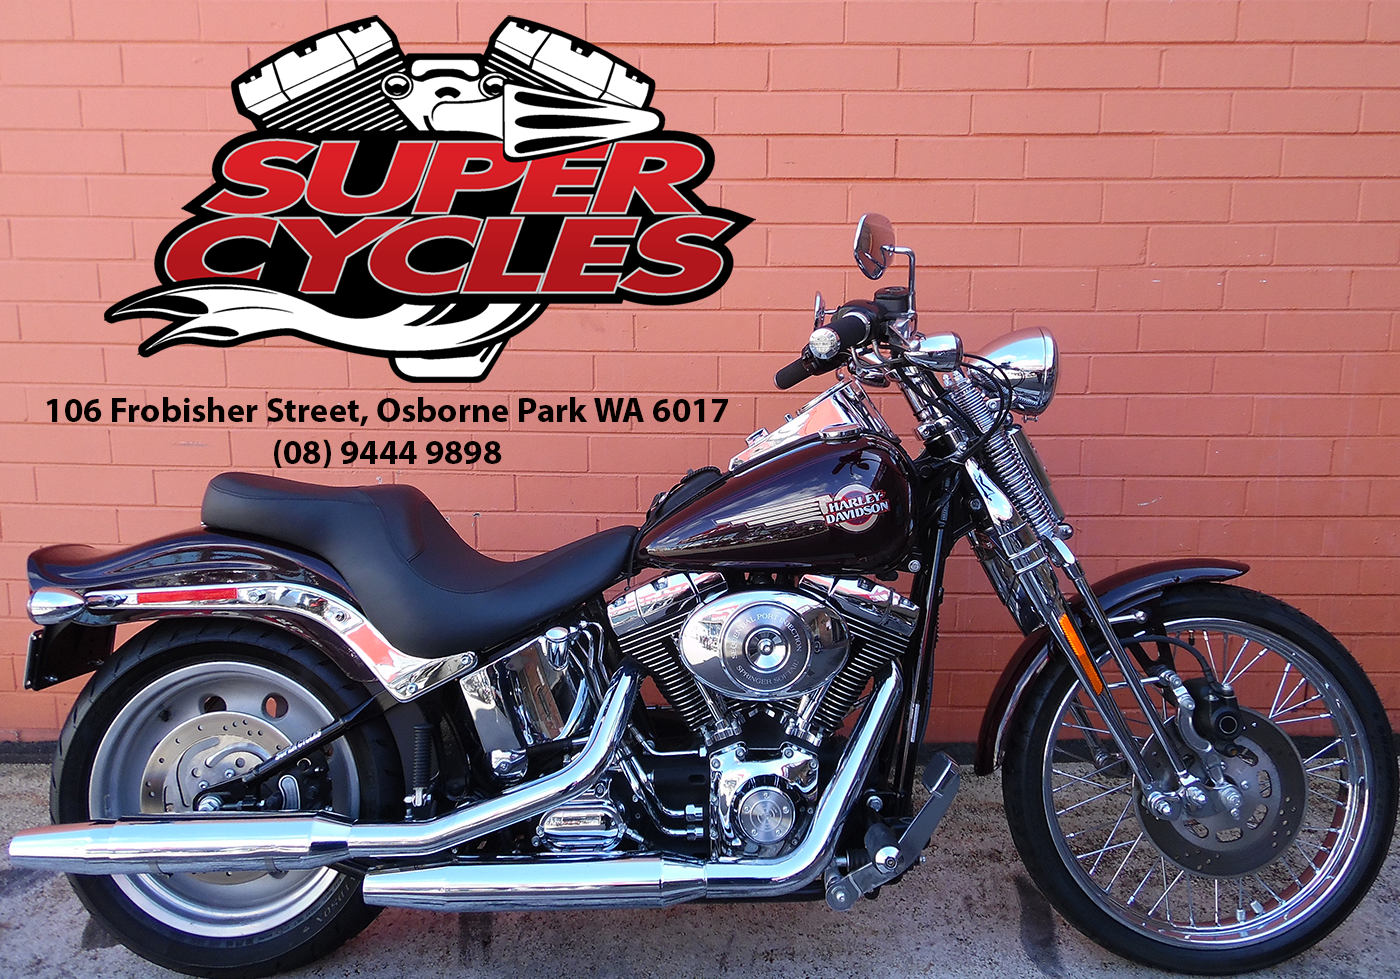 harley davidson bikes for sale in perth wa – brju.co